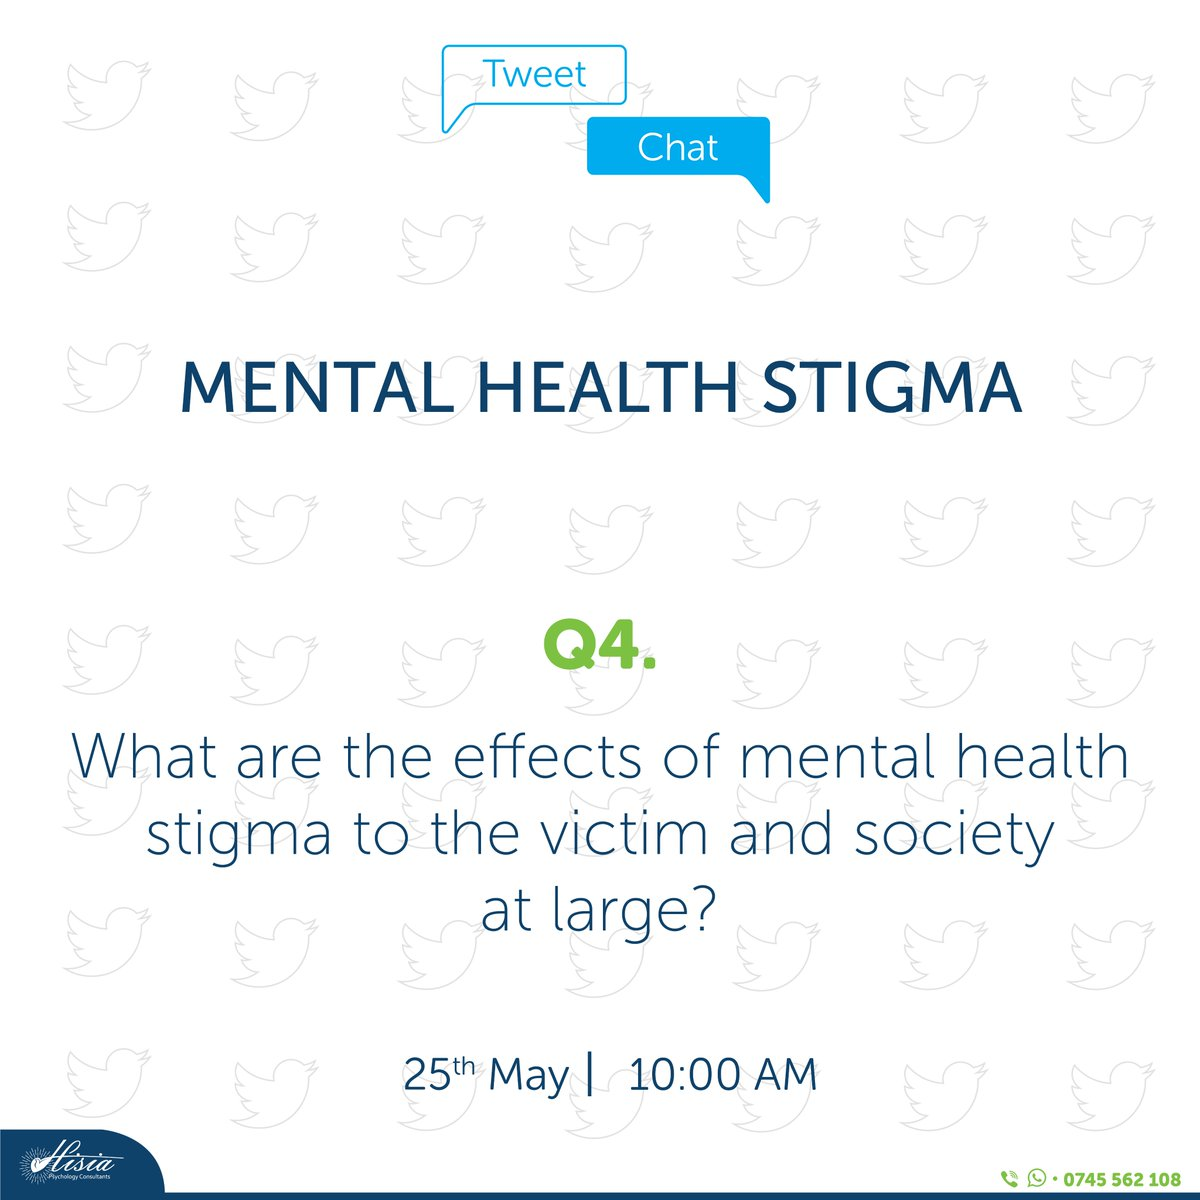 Q4: What are the effects of mental health stigma to the victim and society at large?  @MUnsilenced, @haven_mental https://t.co/wD7imMdxnM